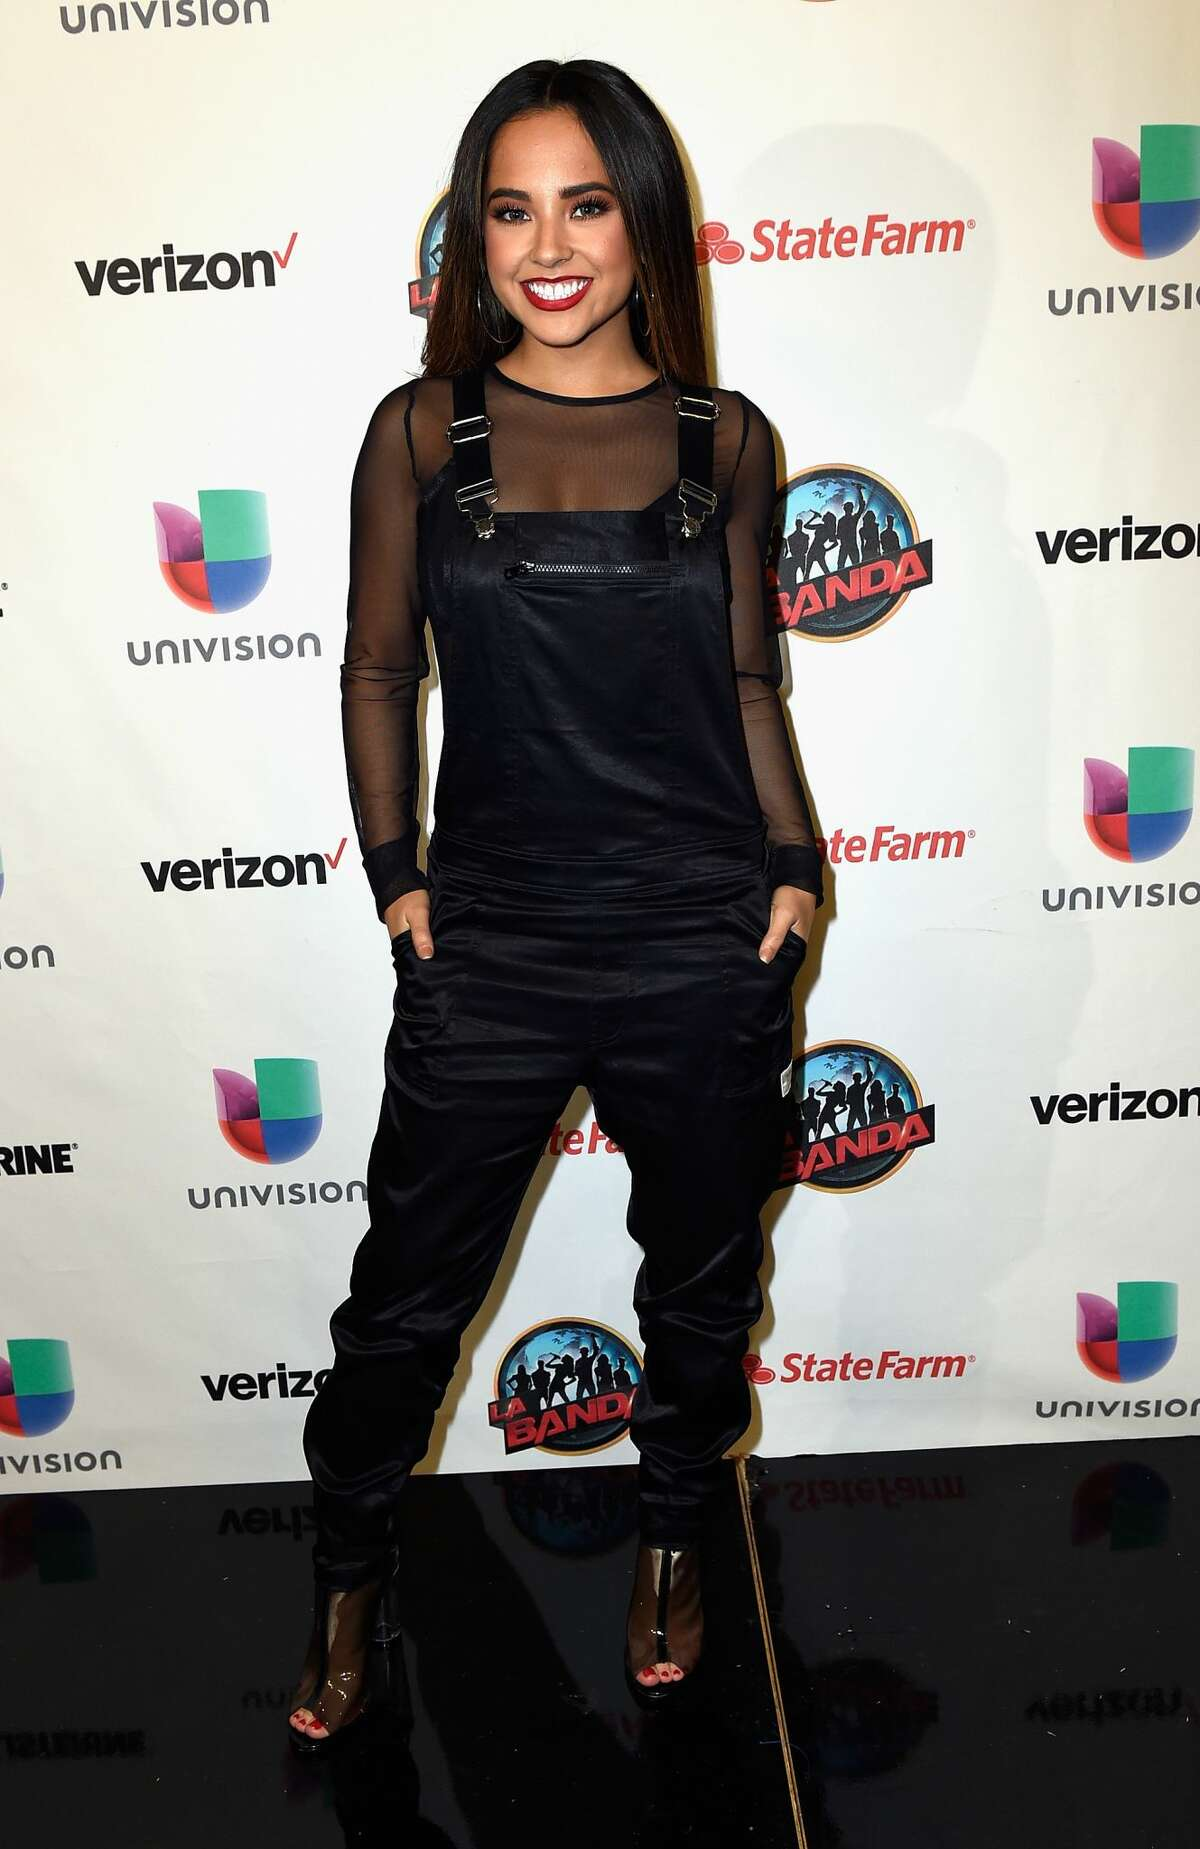 MIAMI, FL - OCTOBER 30: Becky G attends the La Banda at Univision Studios on October 30, 2016 in Miami, Florida. (Photo by Gustavo Caballero/Getty Images)